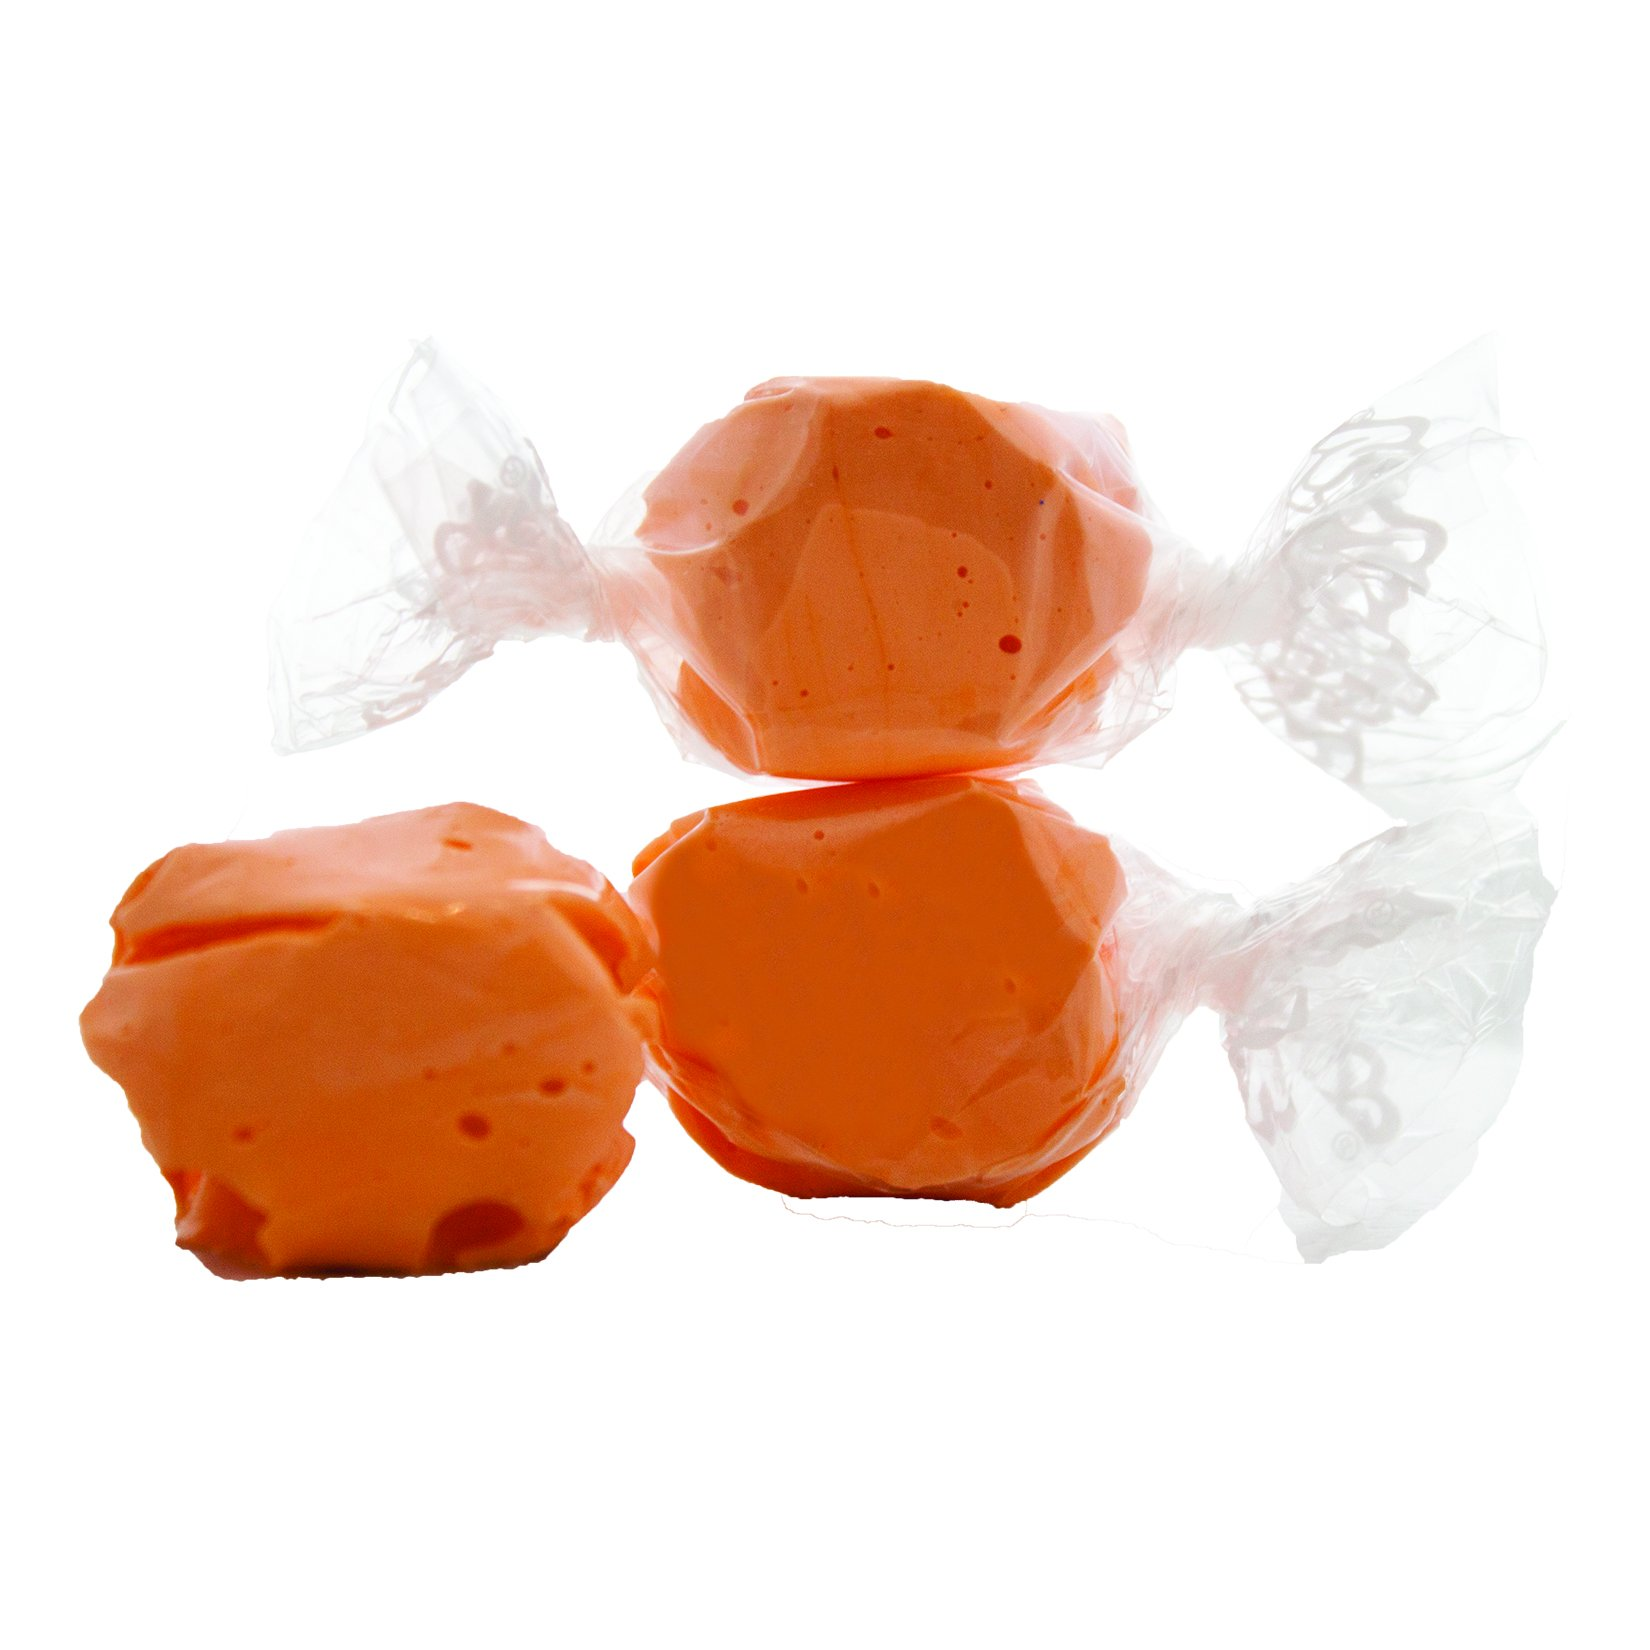 Taffy Town Colors Orange Orange Flavor Candy Store